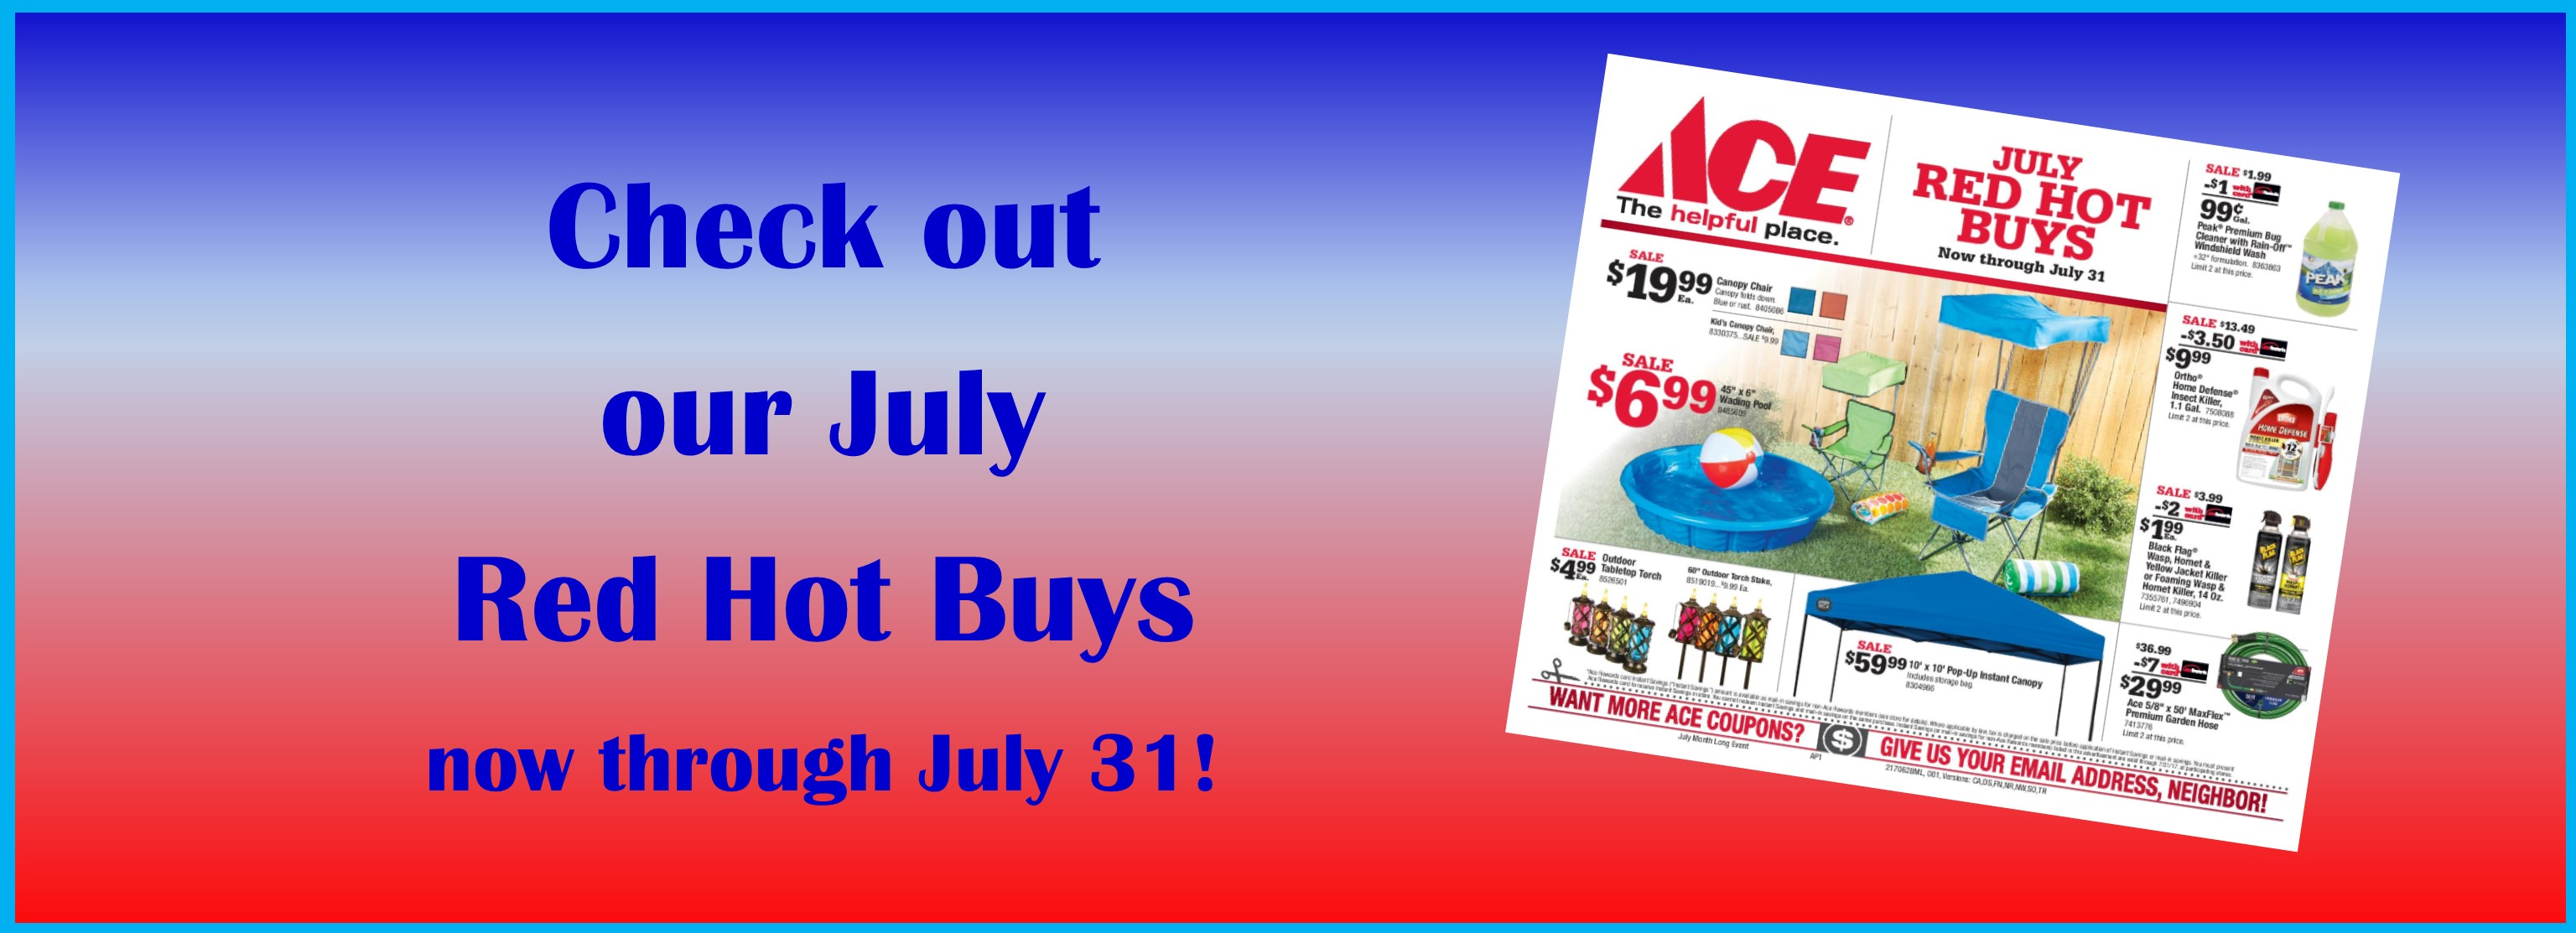 Ace Red Hot Buys through 7/31